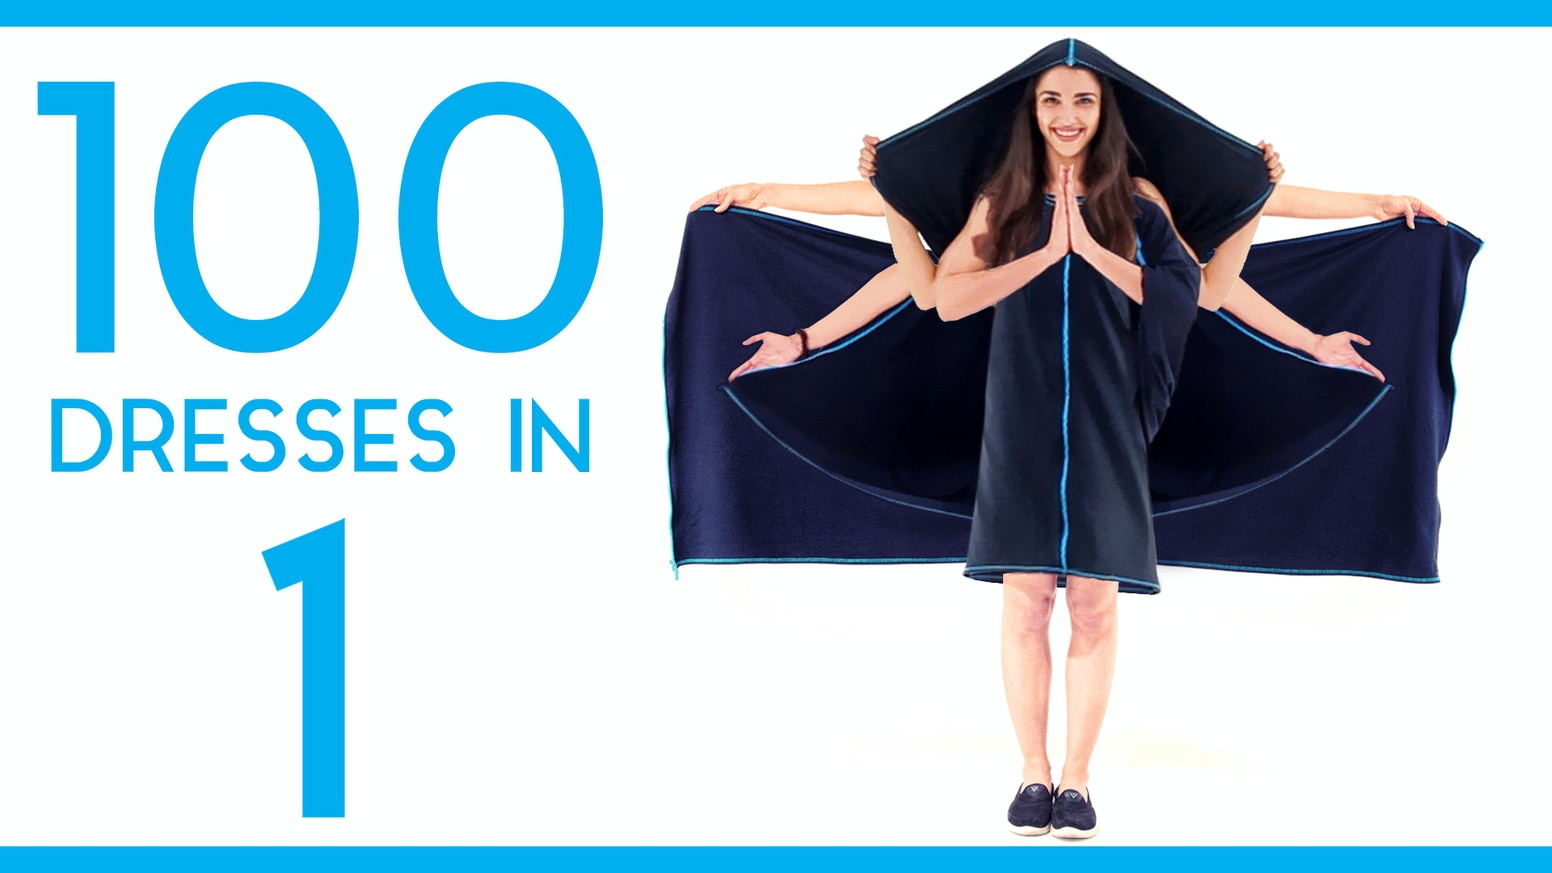 The world's first convertible dress with more than 100 everyday styles in just one dress. Change your style in seconds.